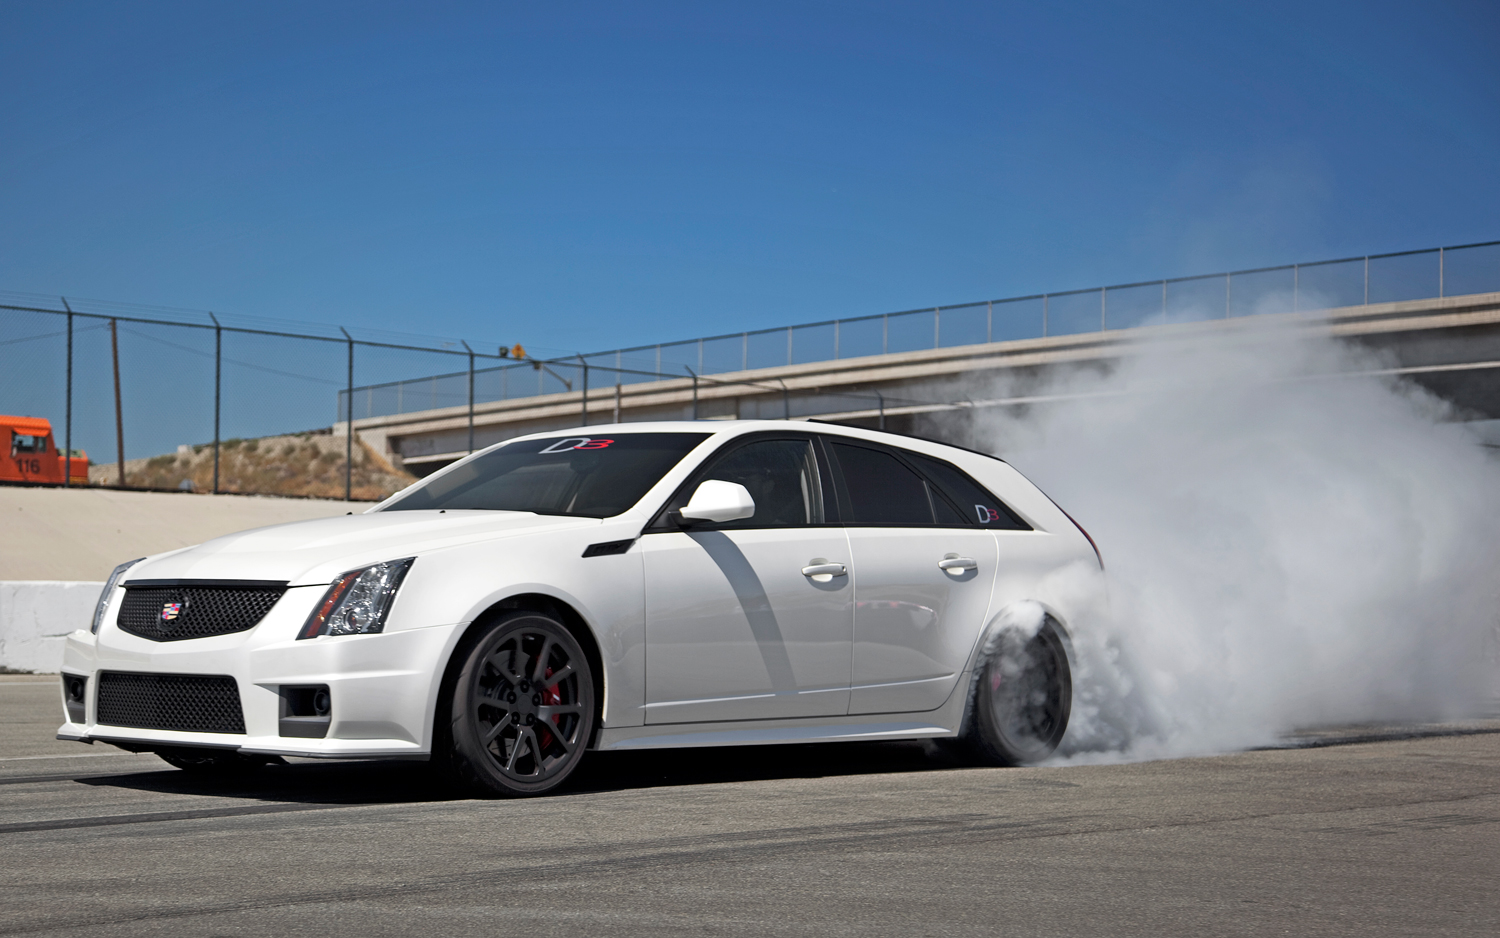 First Test D3 Cadillac Cts V Wagon Motor Trend